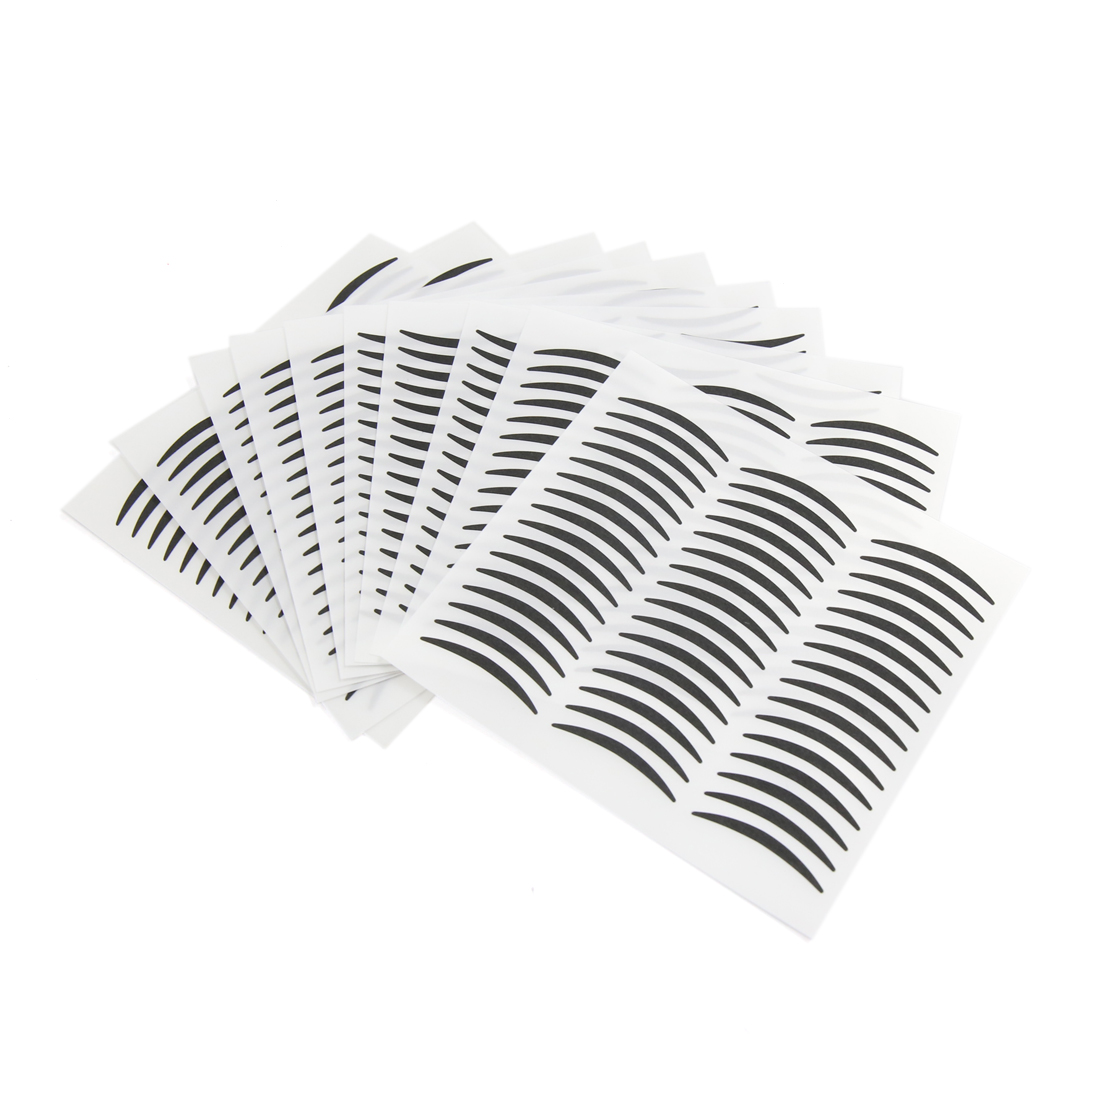 240 Pairs Black Narrow Double Eyelid Sticker Eye Make Up Tapes Cosmetic Tools